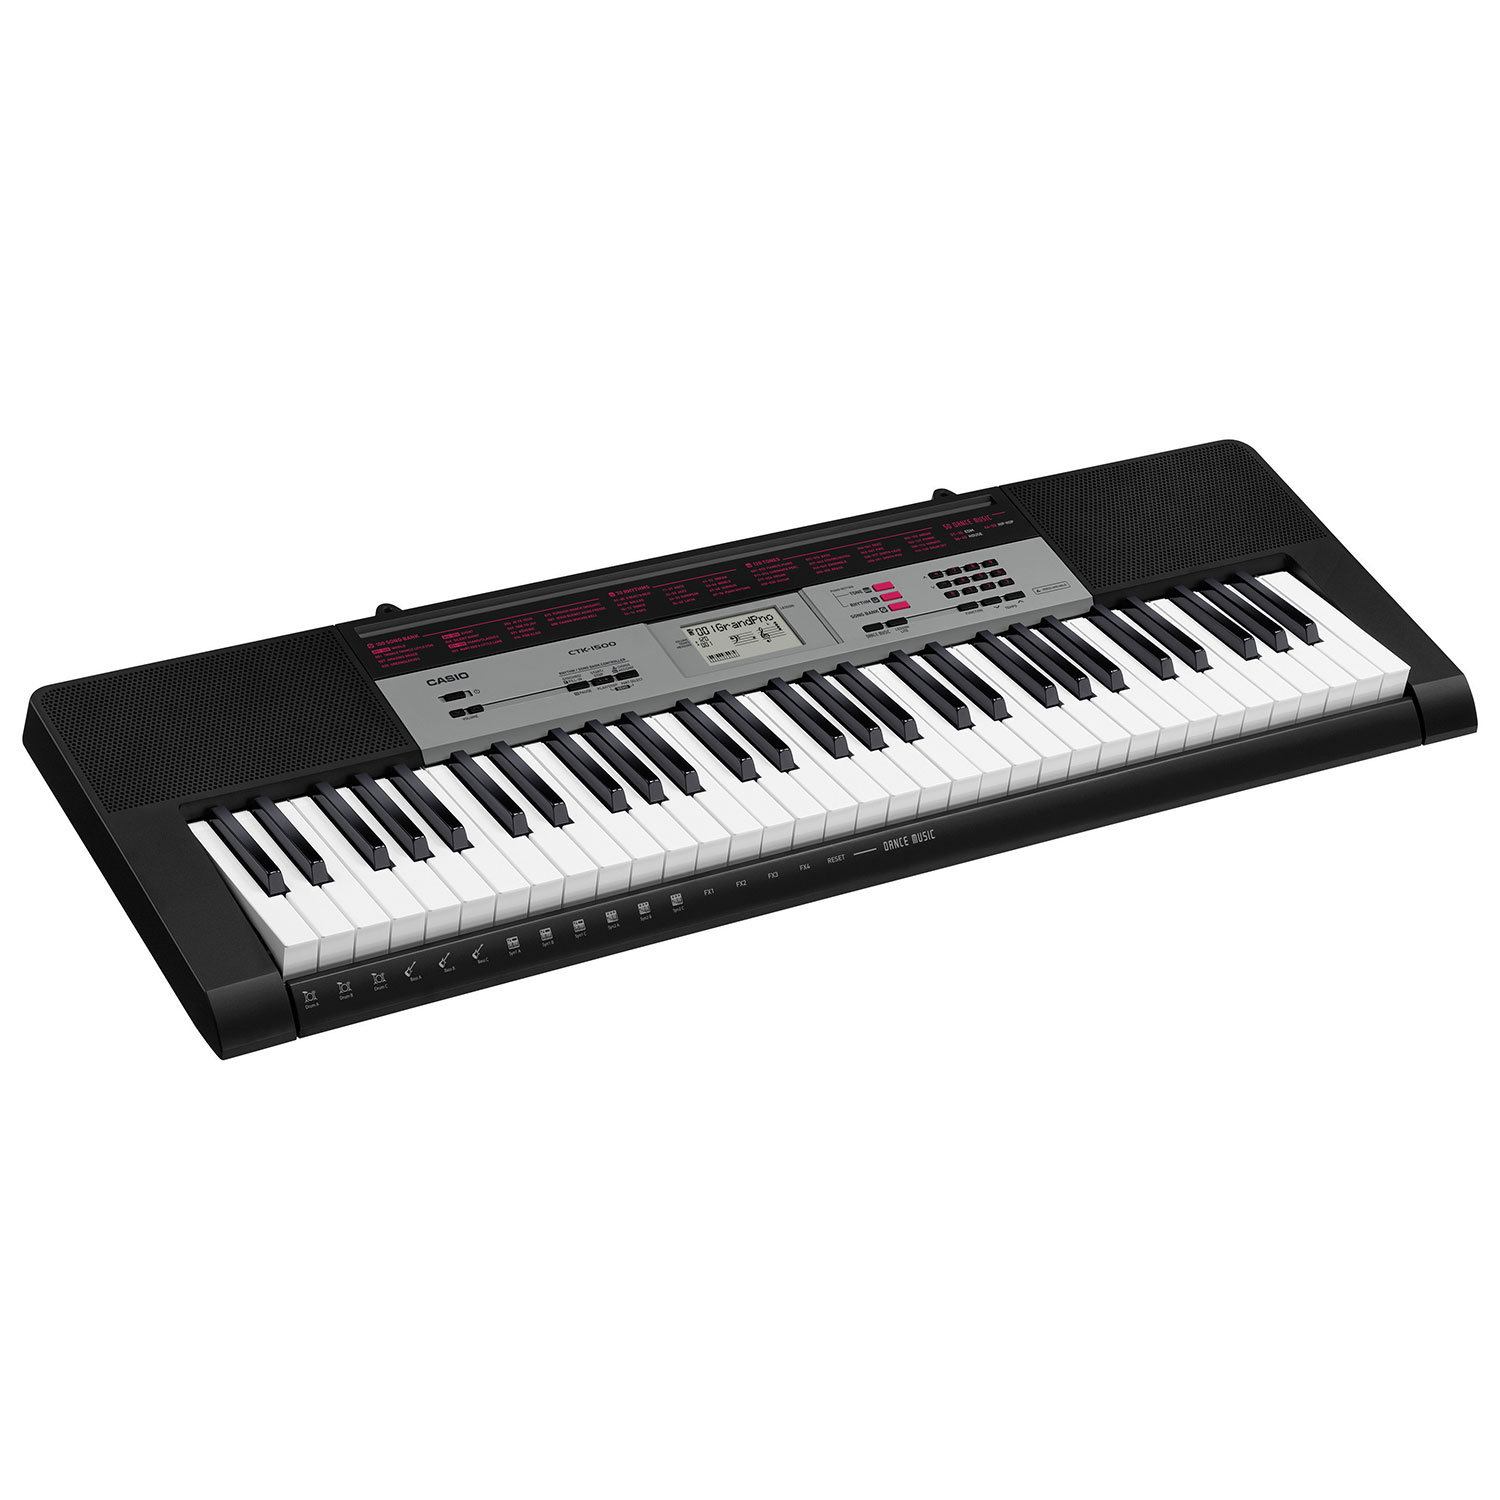 668caa09988 Keyboard Pianos & Digital Pianos | Best Buy Canada